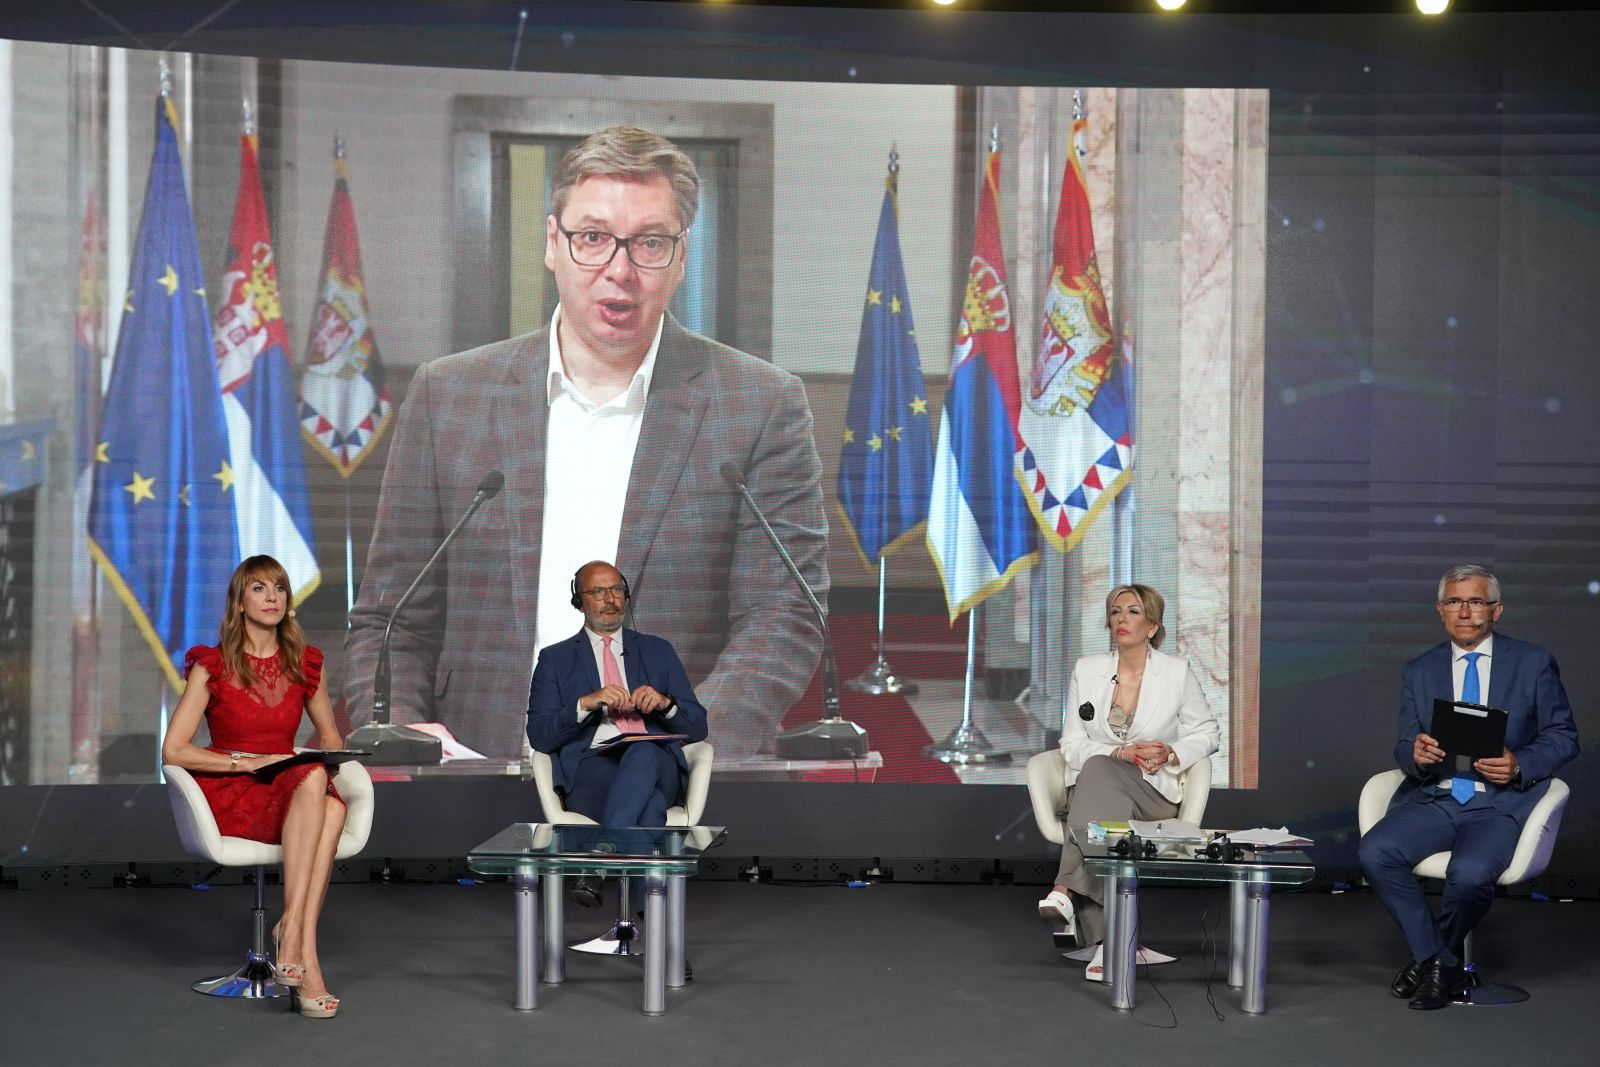 Vučić: IPA funds important for acceleration of reforms